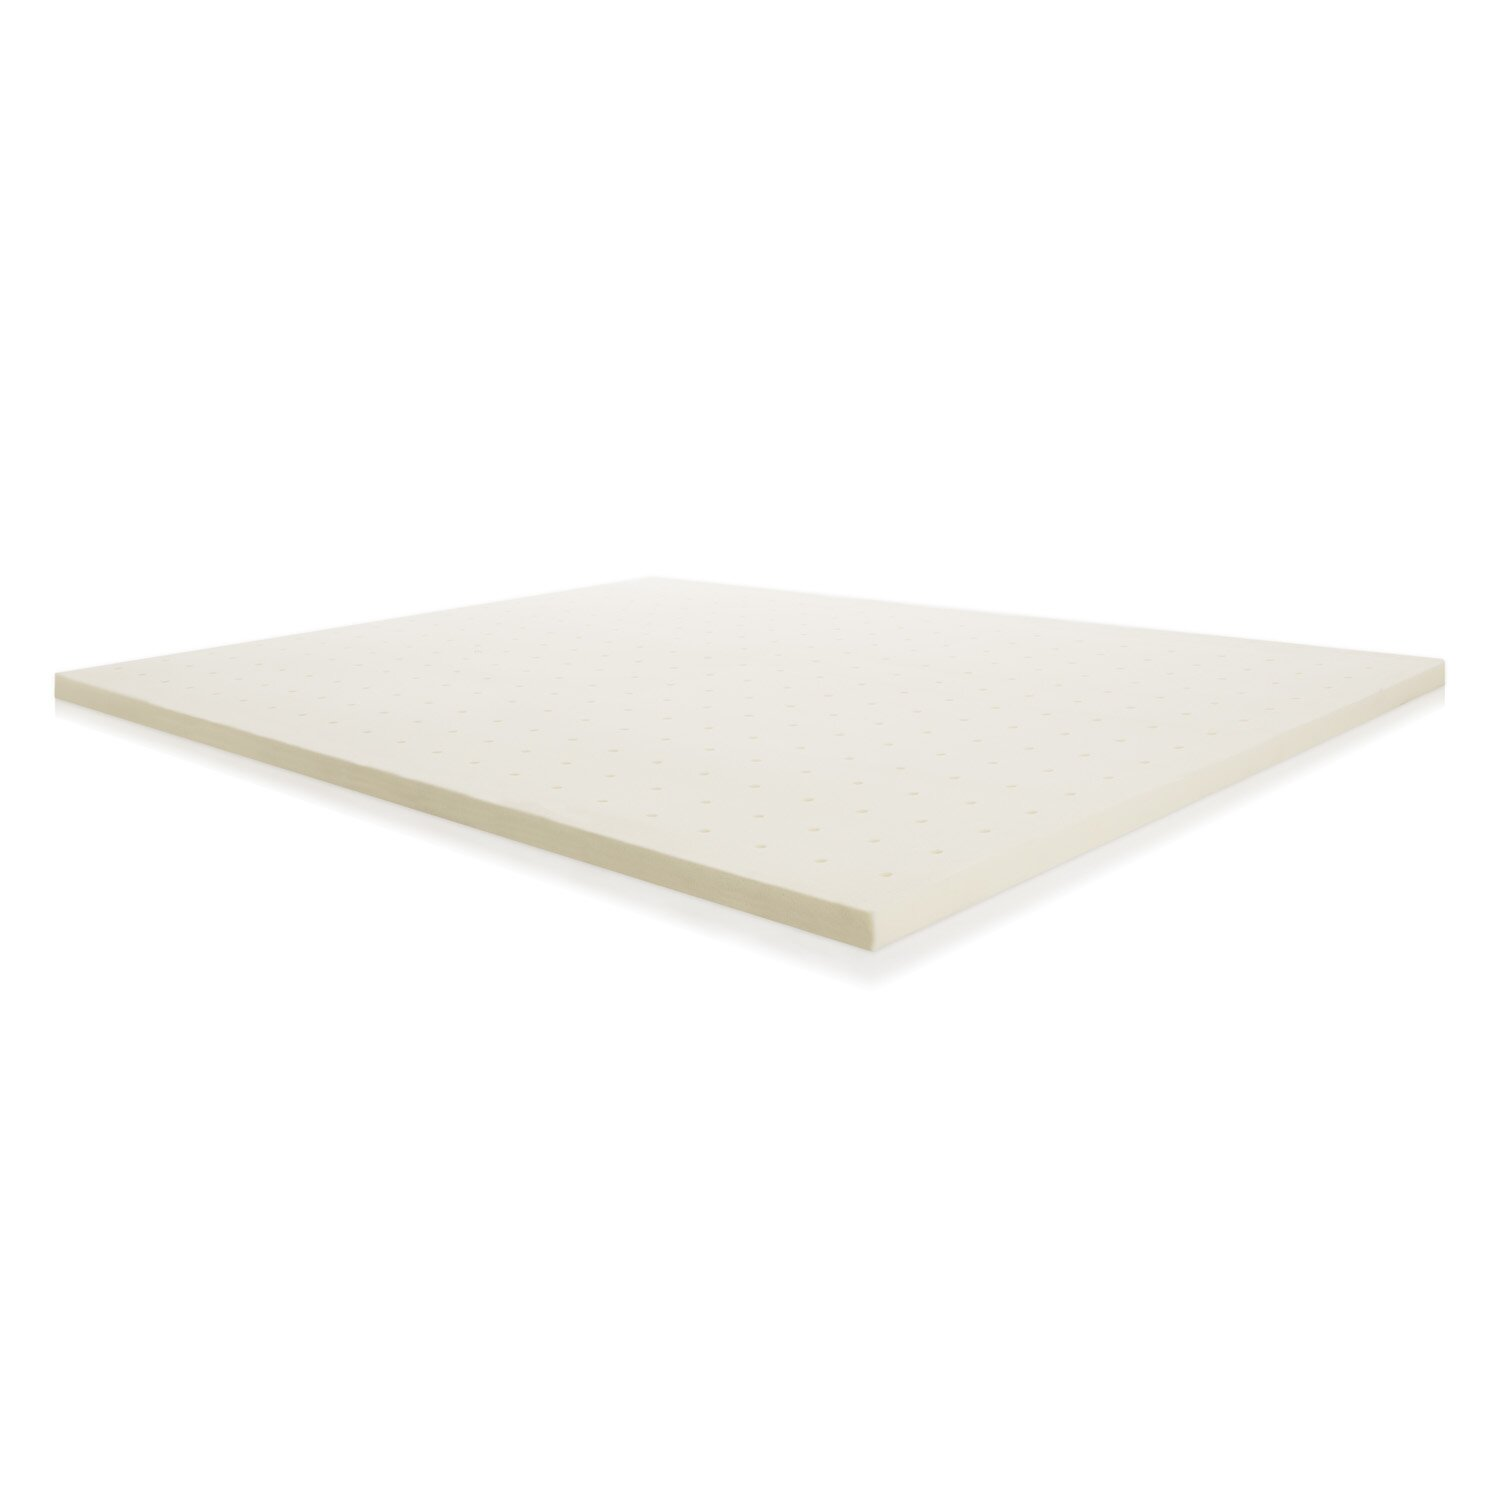 Lucid memory foam mattress topper reviews Top rated memory foam mattress